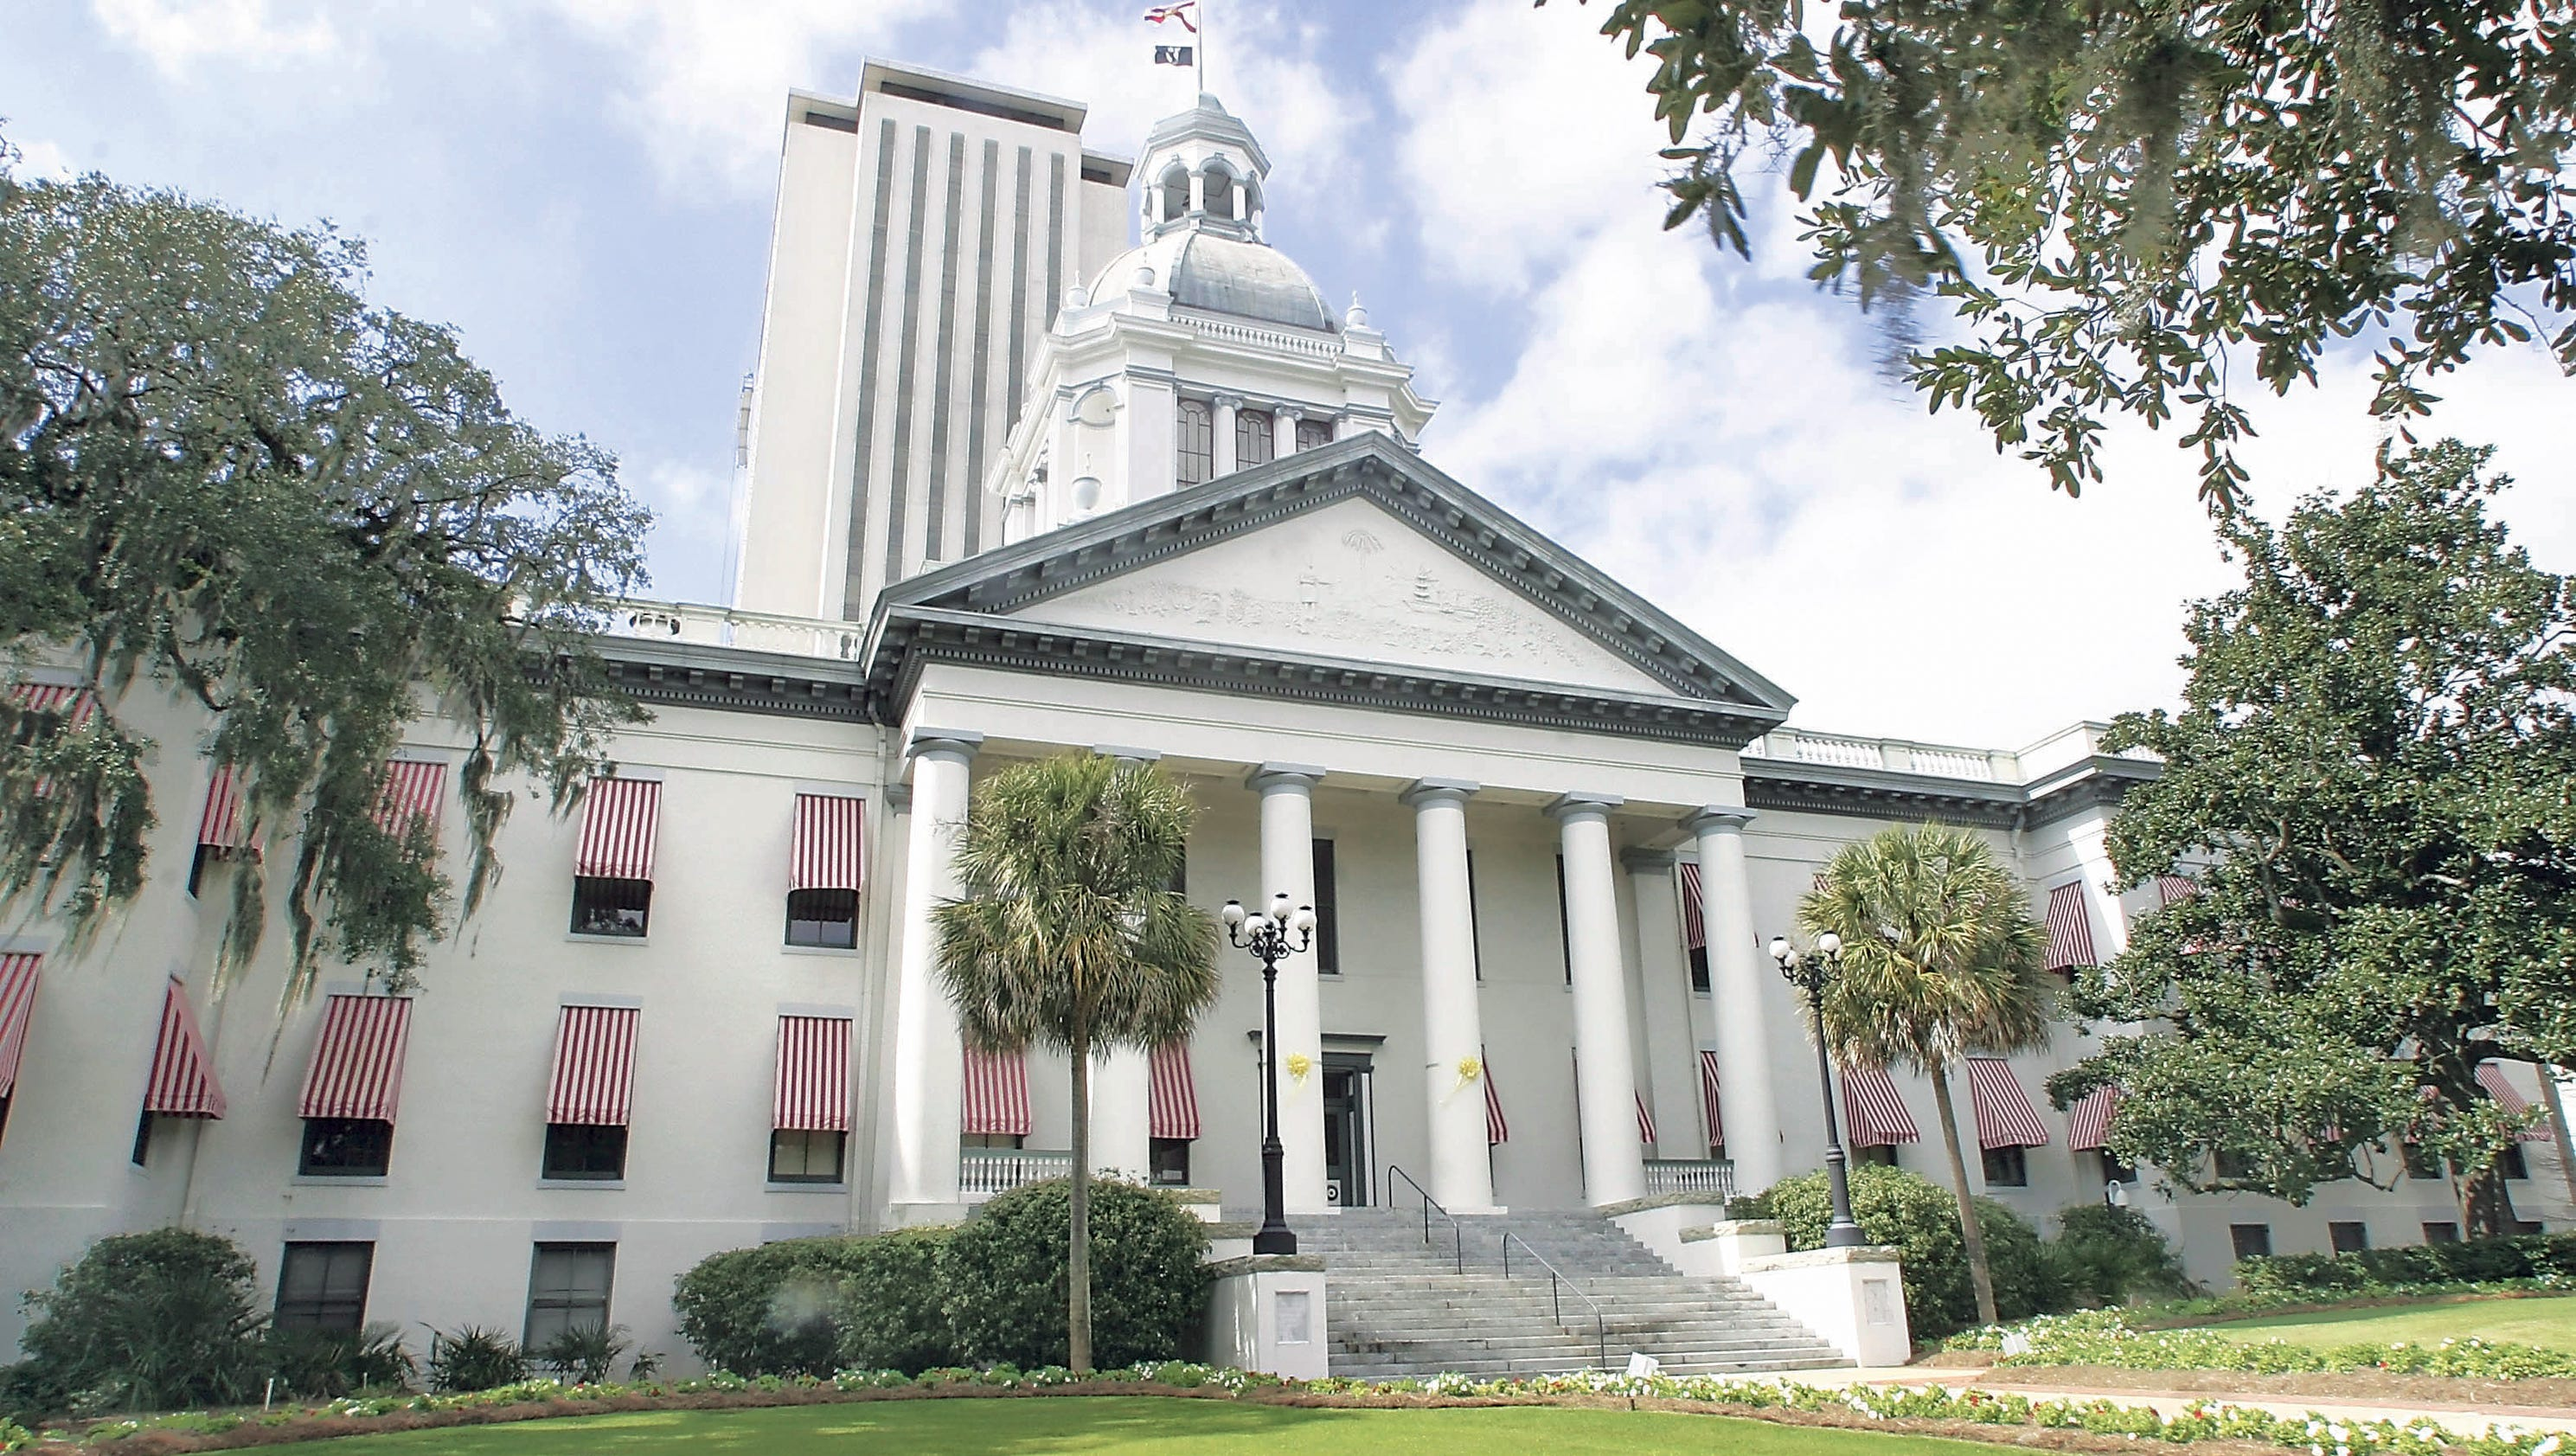 awning capitols the two capital tallahassee a capitol news awnings timeline florida story